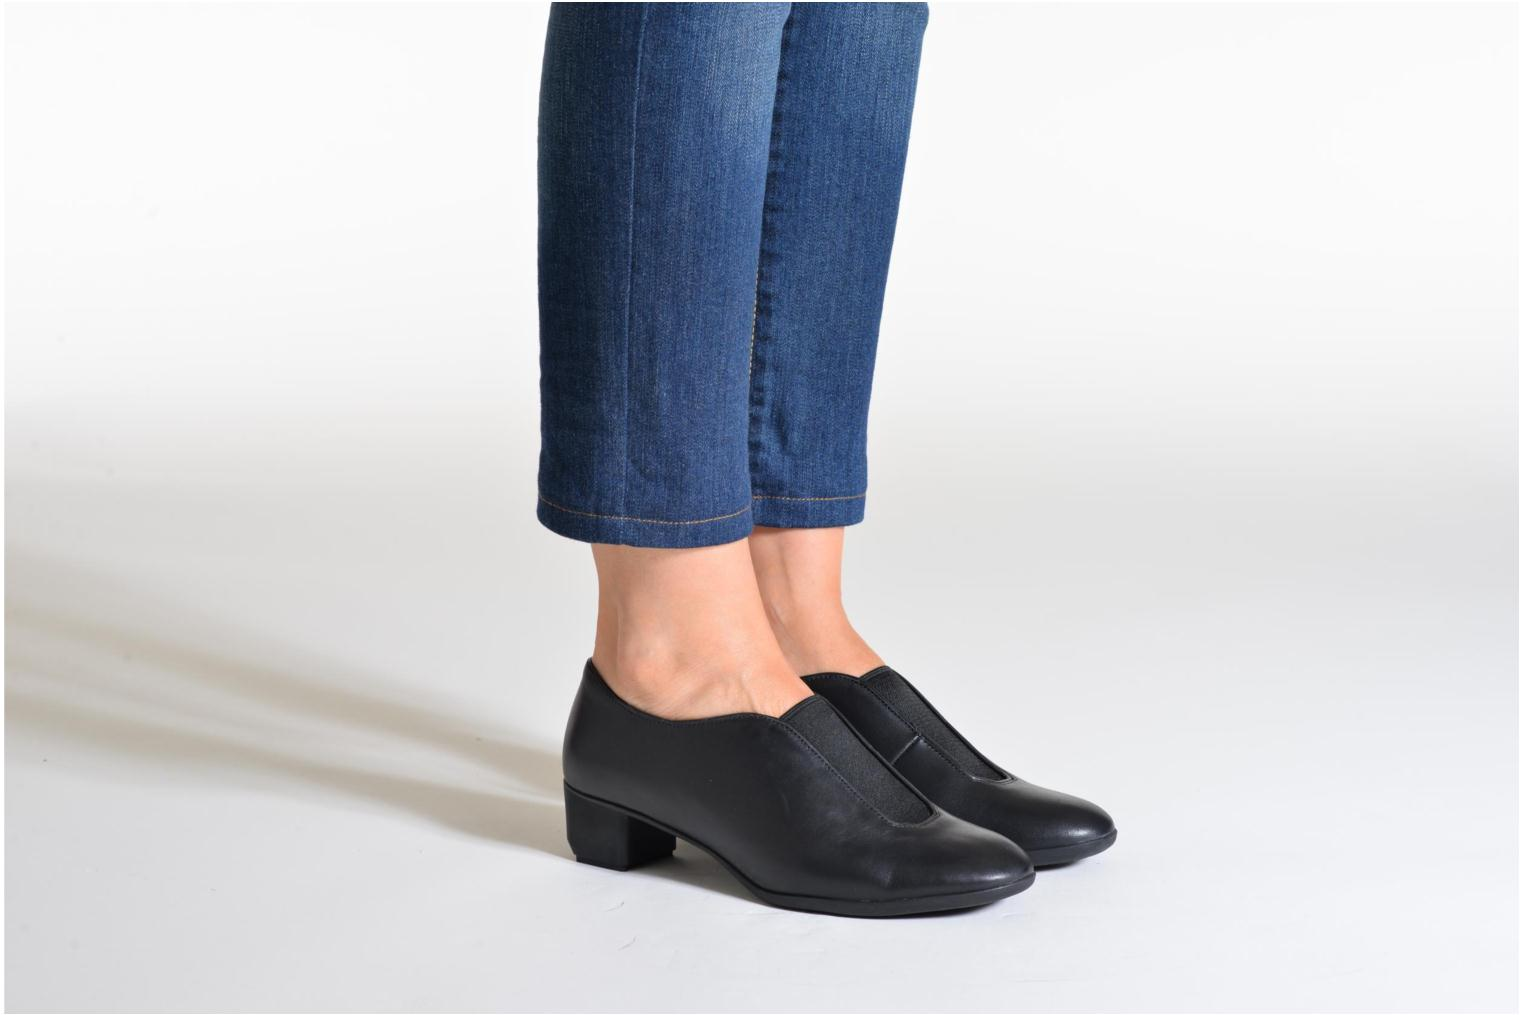 Beth K200014 Supersoft Negro/Elisa Negro